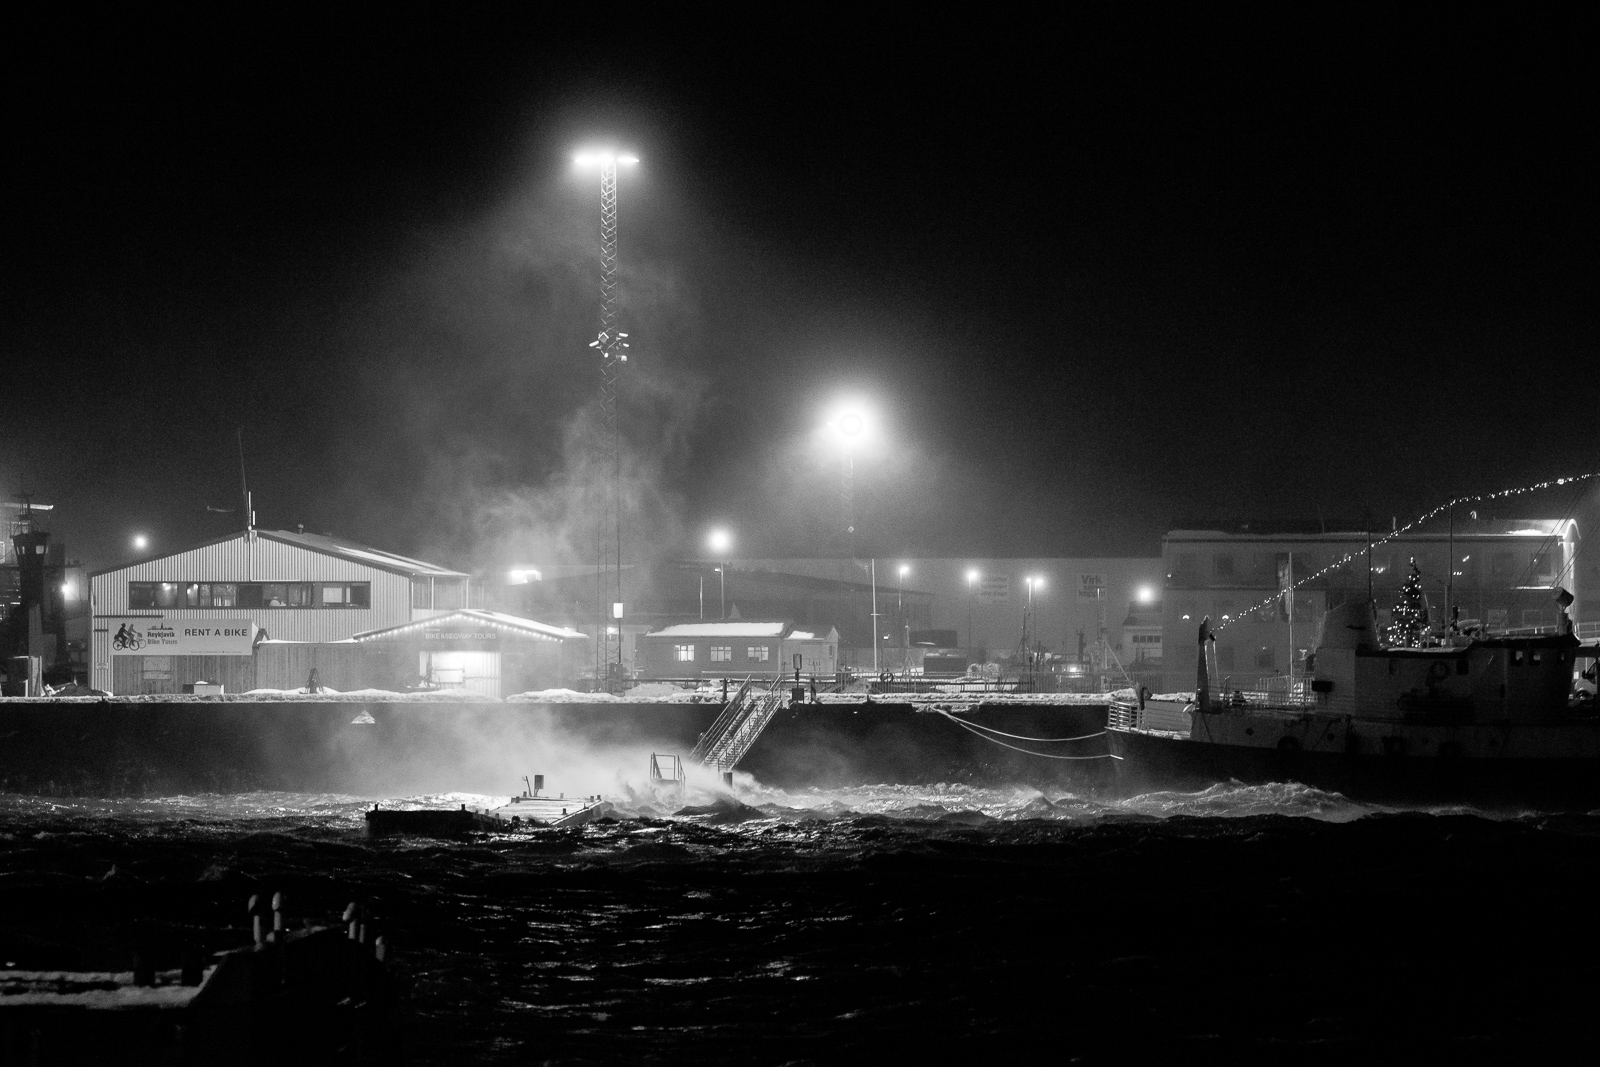 Winds Of Up To 40 MPS Storm Hitting Iceland Today